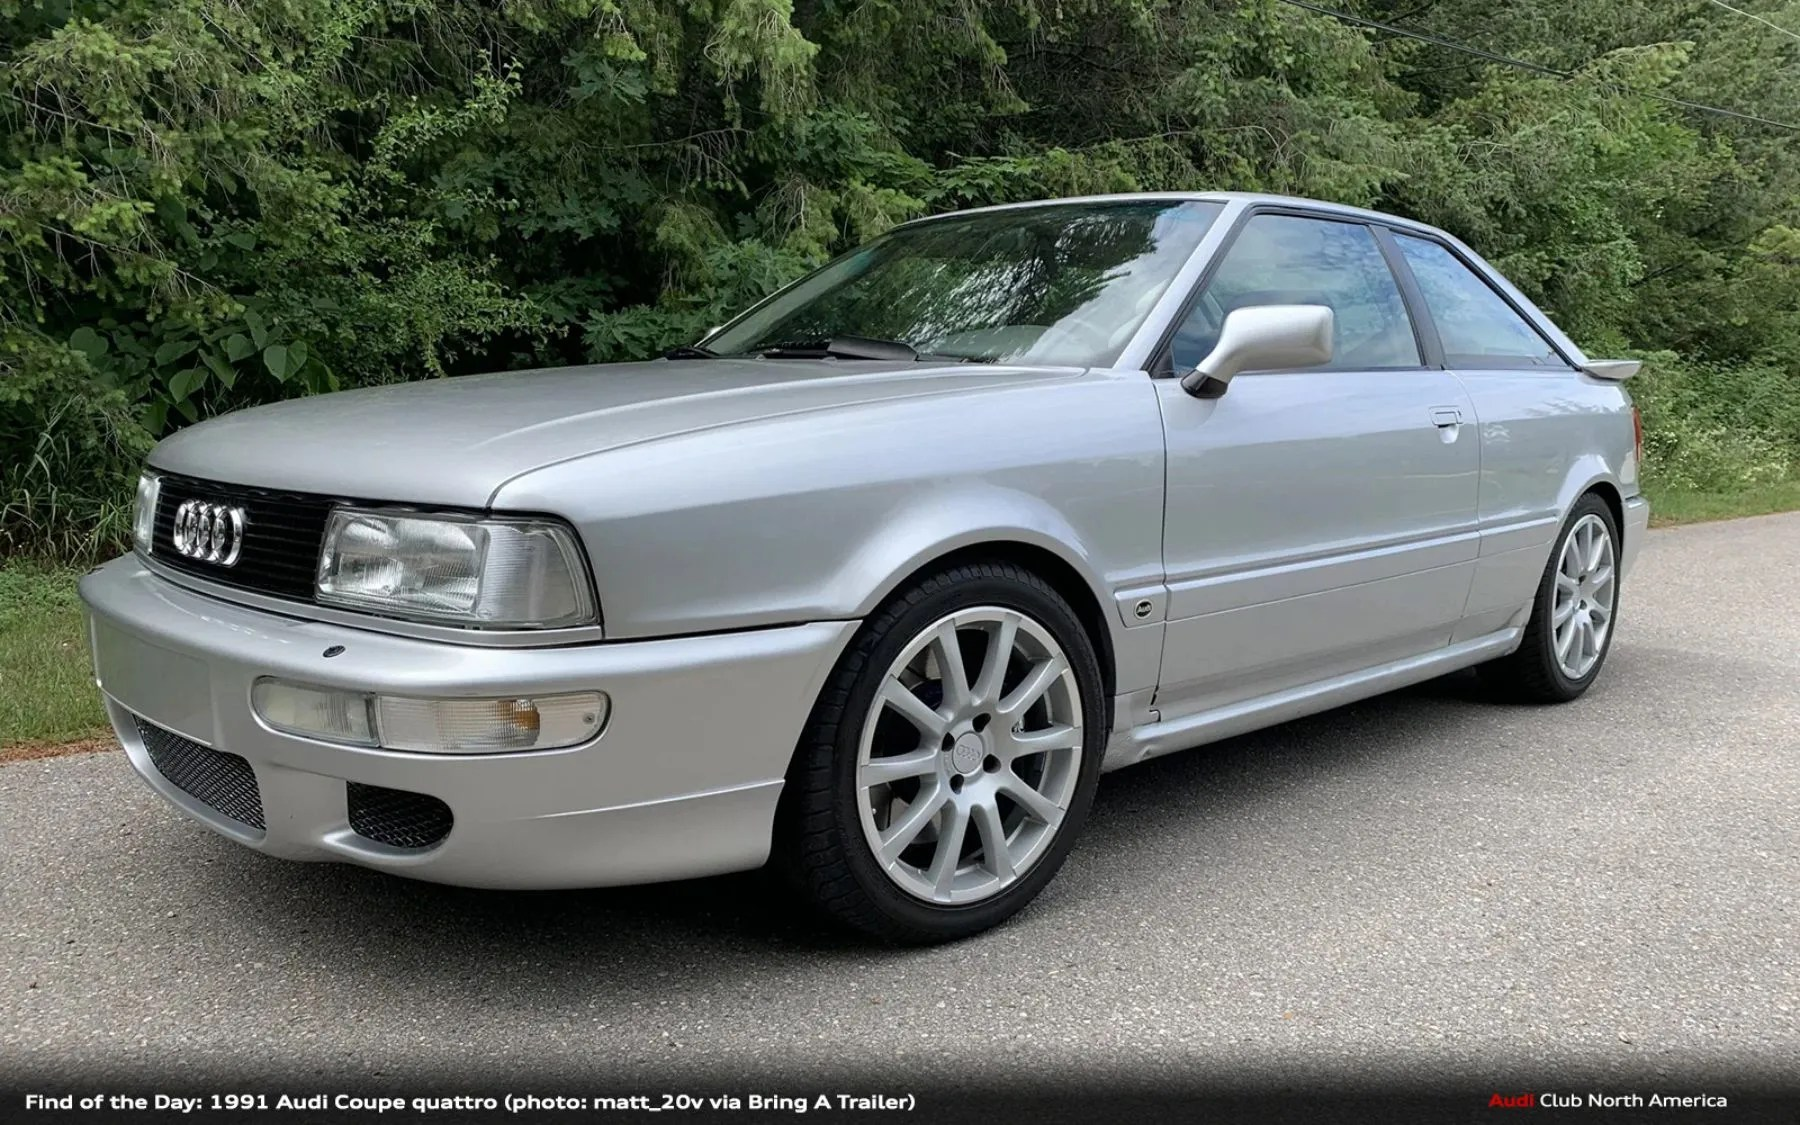 Find of the Day: 1991 Audi Coupe quattro